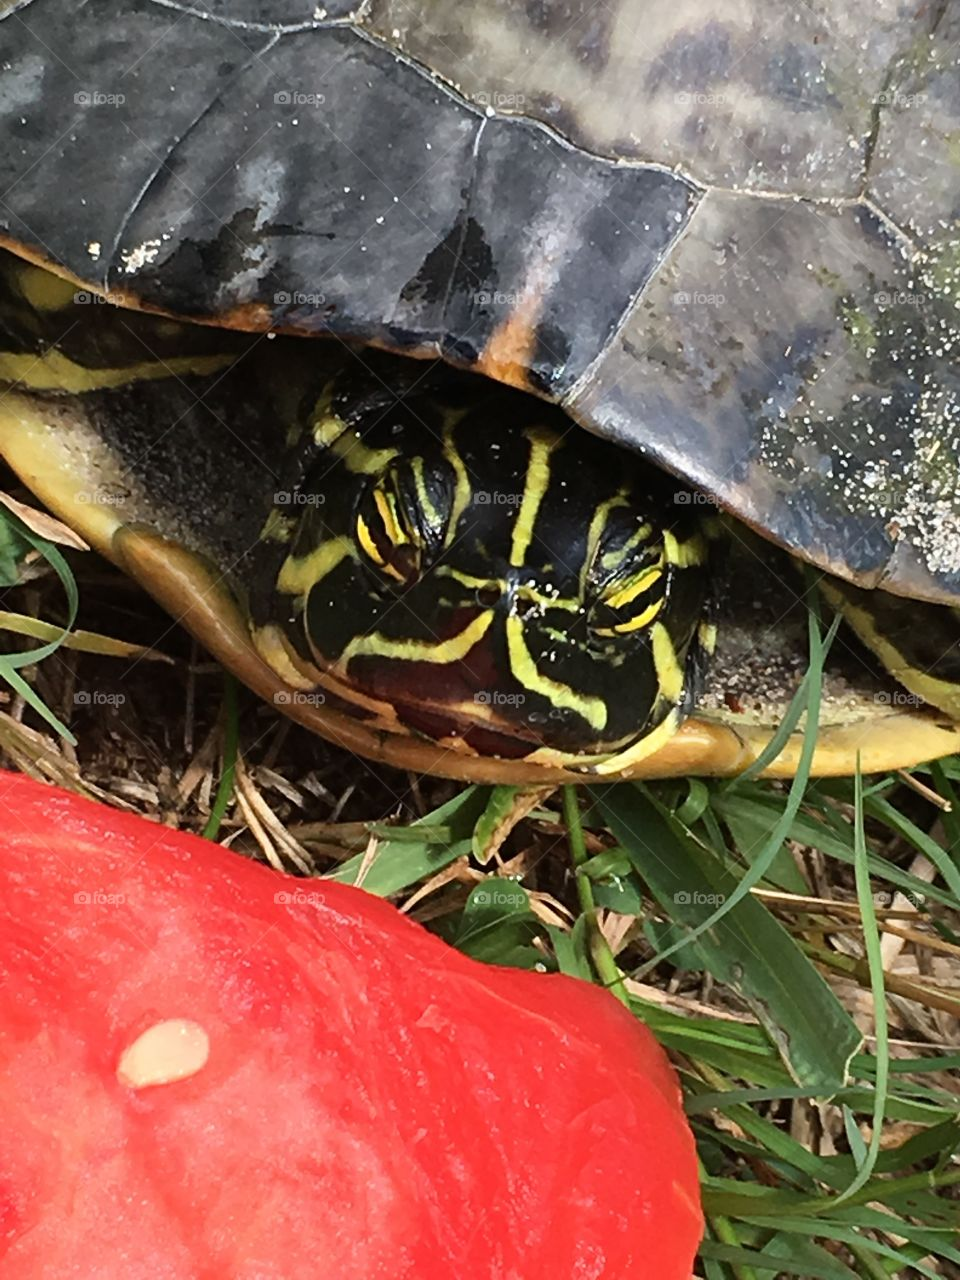 Turtle eating watermelon 🍉 in Florida 🐢